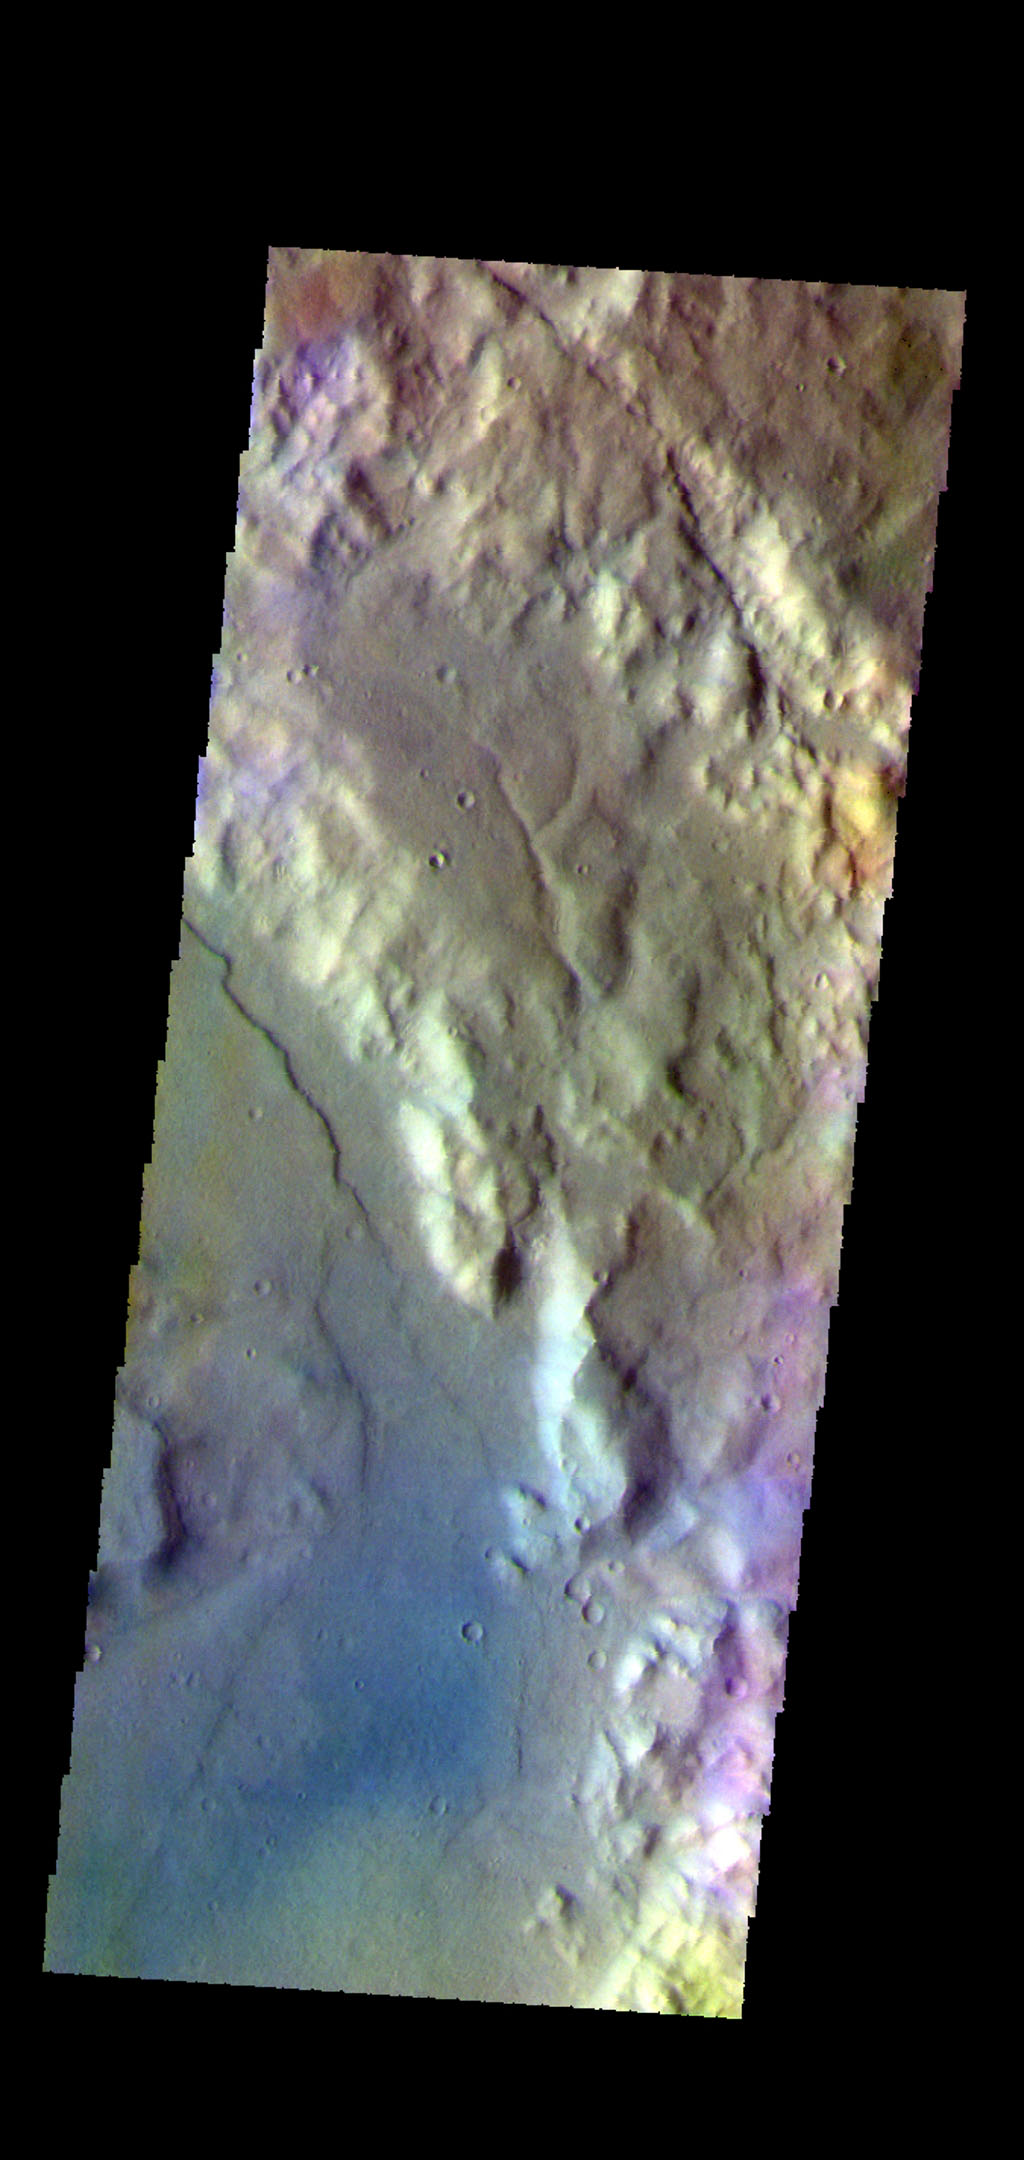 The THEMIS camera contains 5 filters. Data from different filters can be combined in many ways to create a false color image. This image from NASA's 2001 Mars Odyssey spacecraft shows part of the plains and craters in Terra Sirenum.